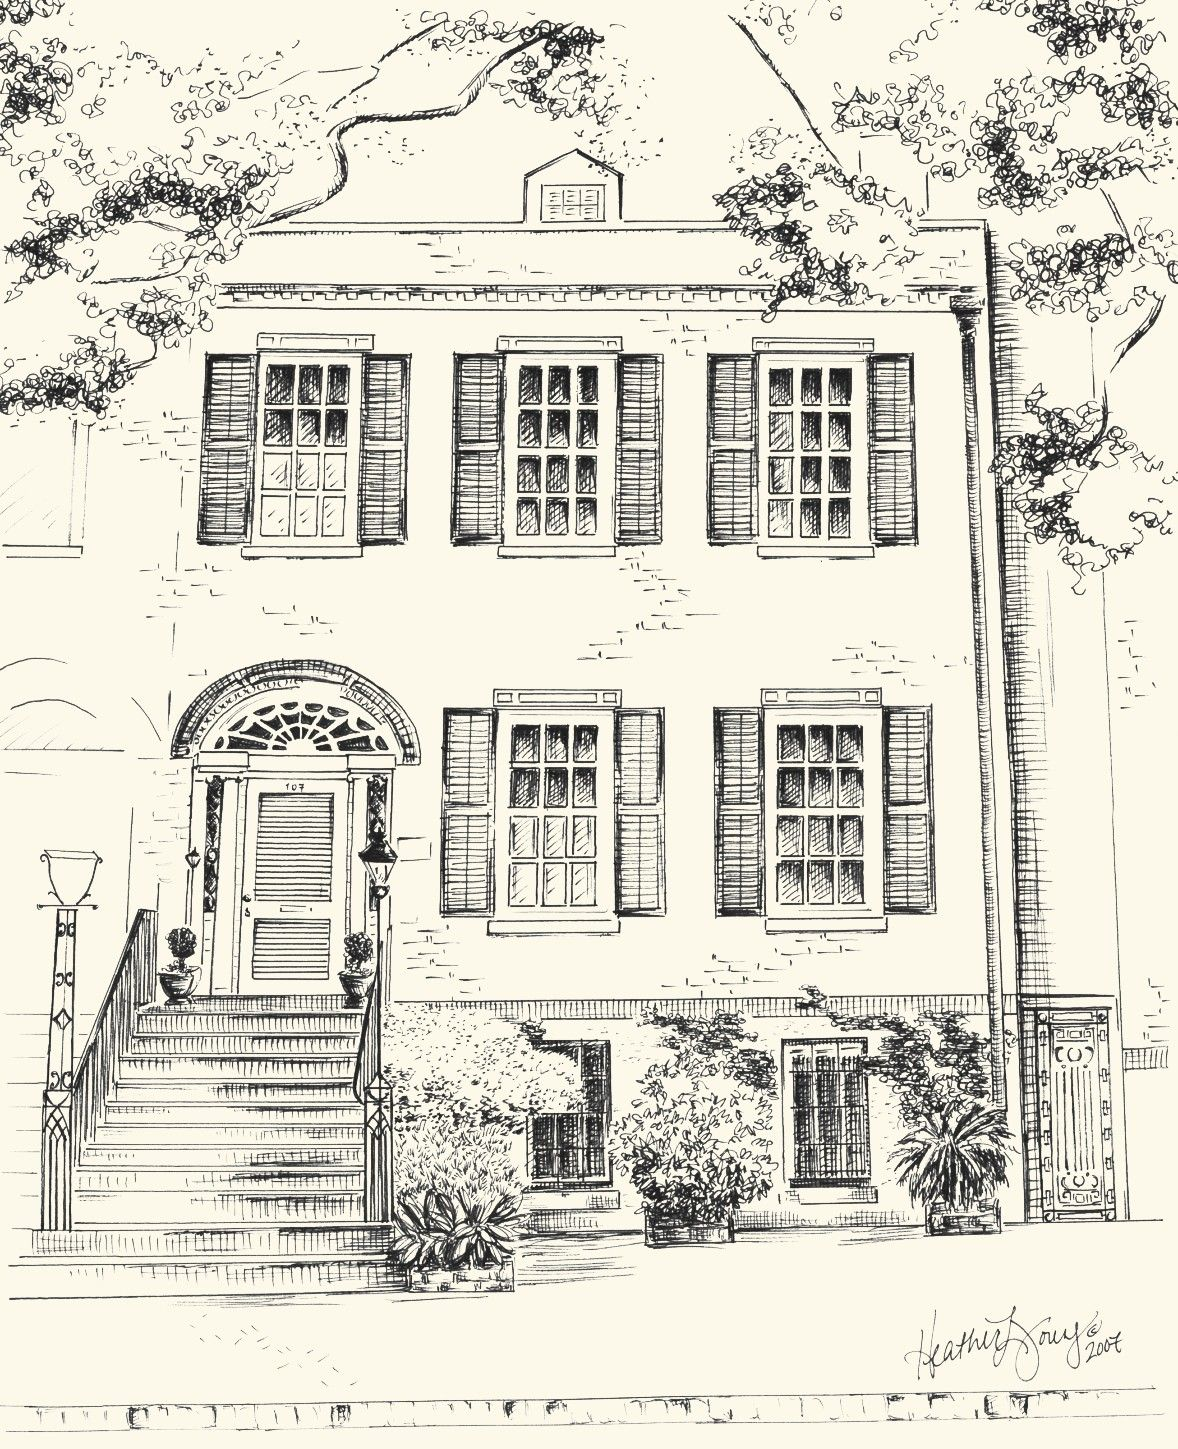 Custom Pen And Ink Architectural Drawing Of Your House Or Home 8x10 Or 11x14 Inches